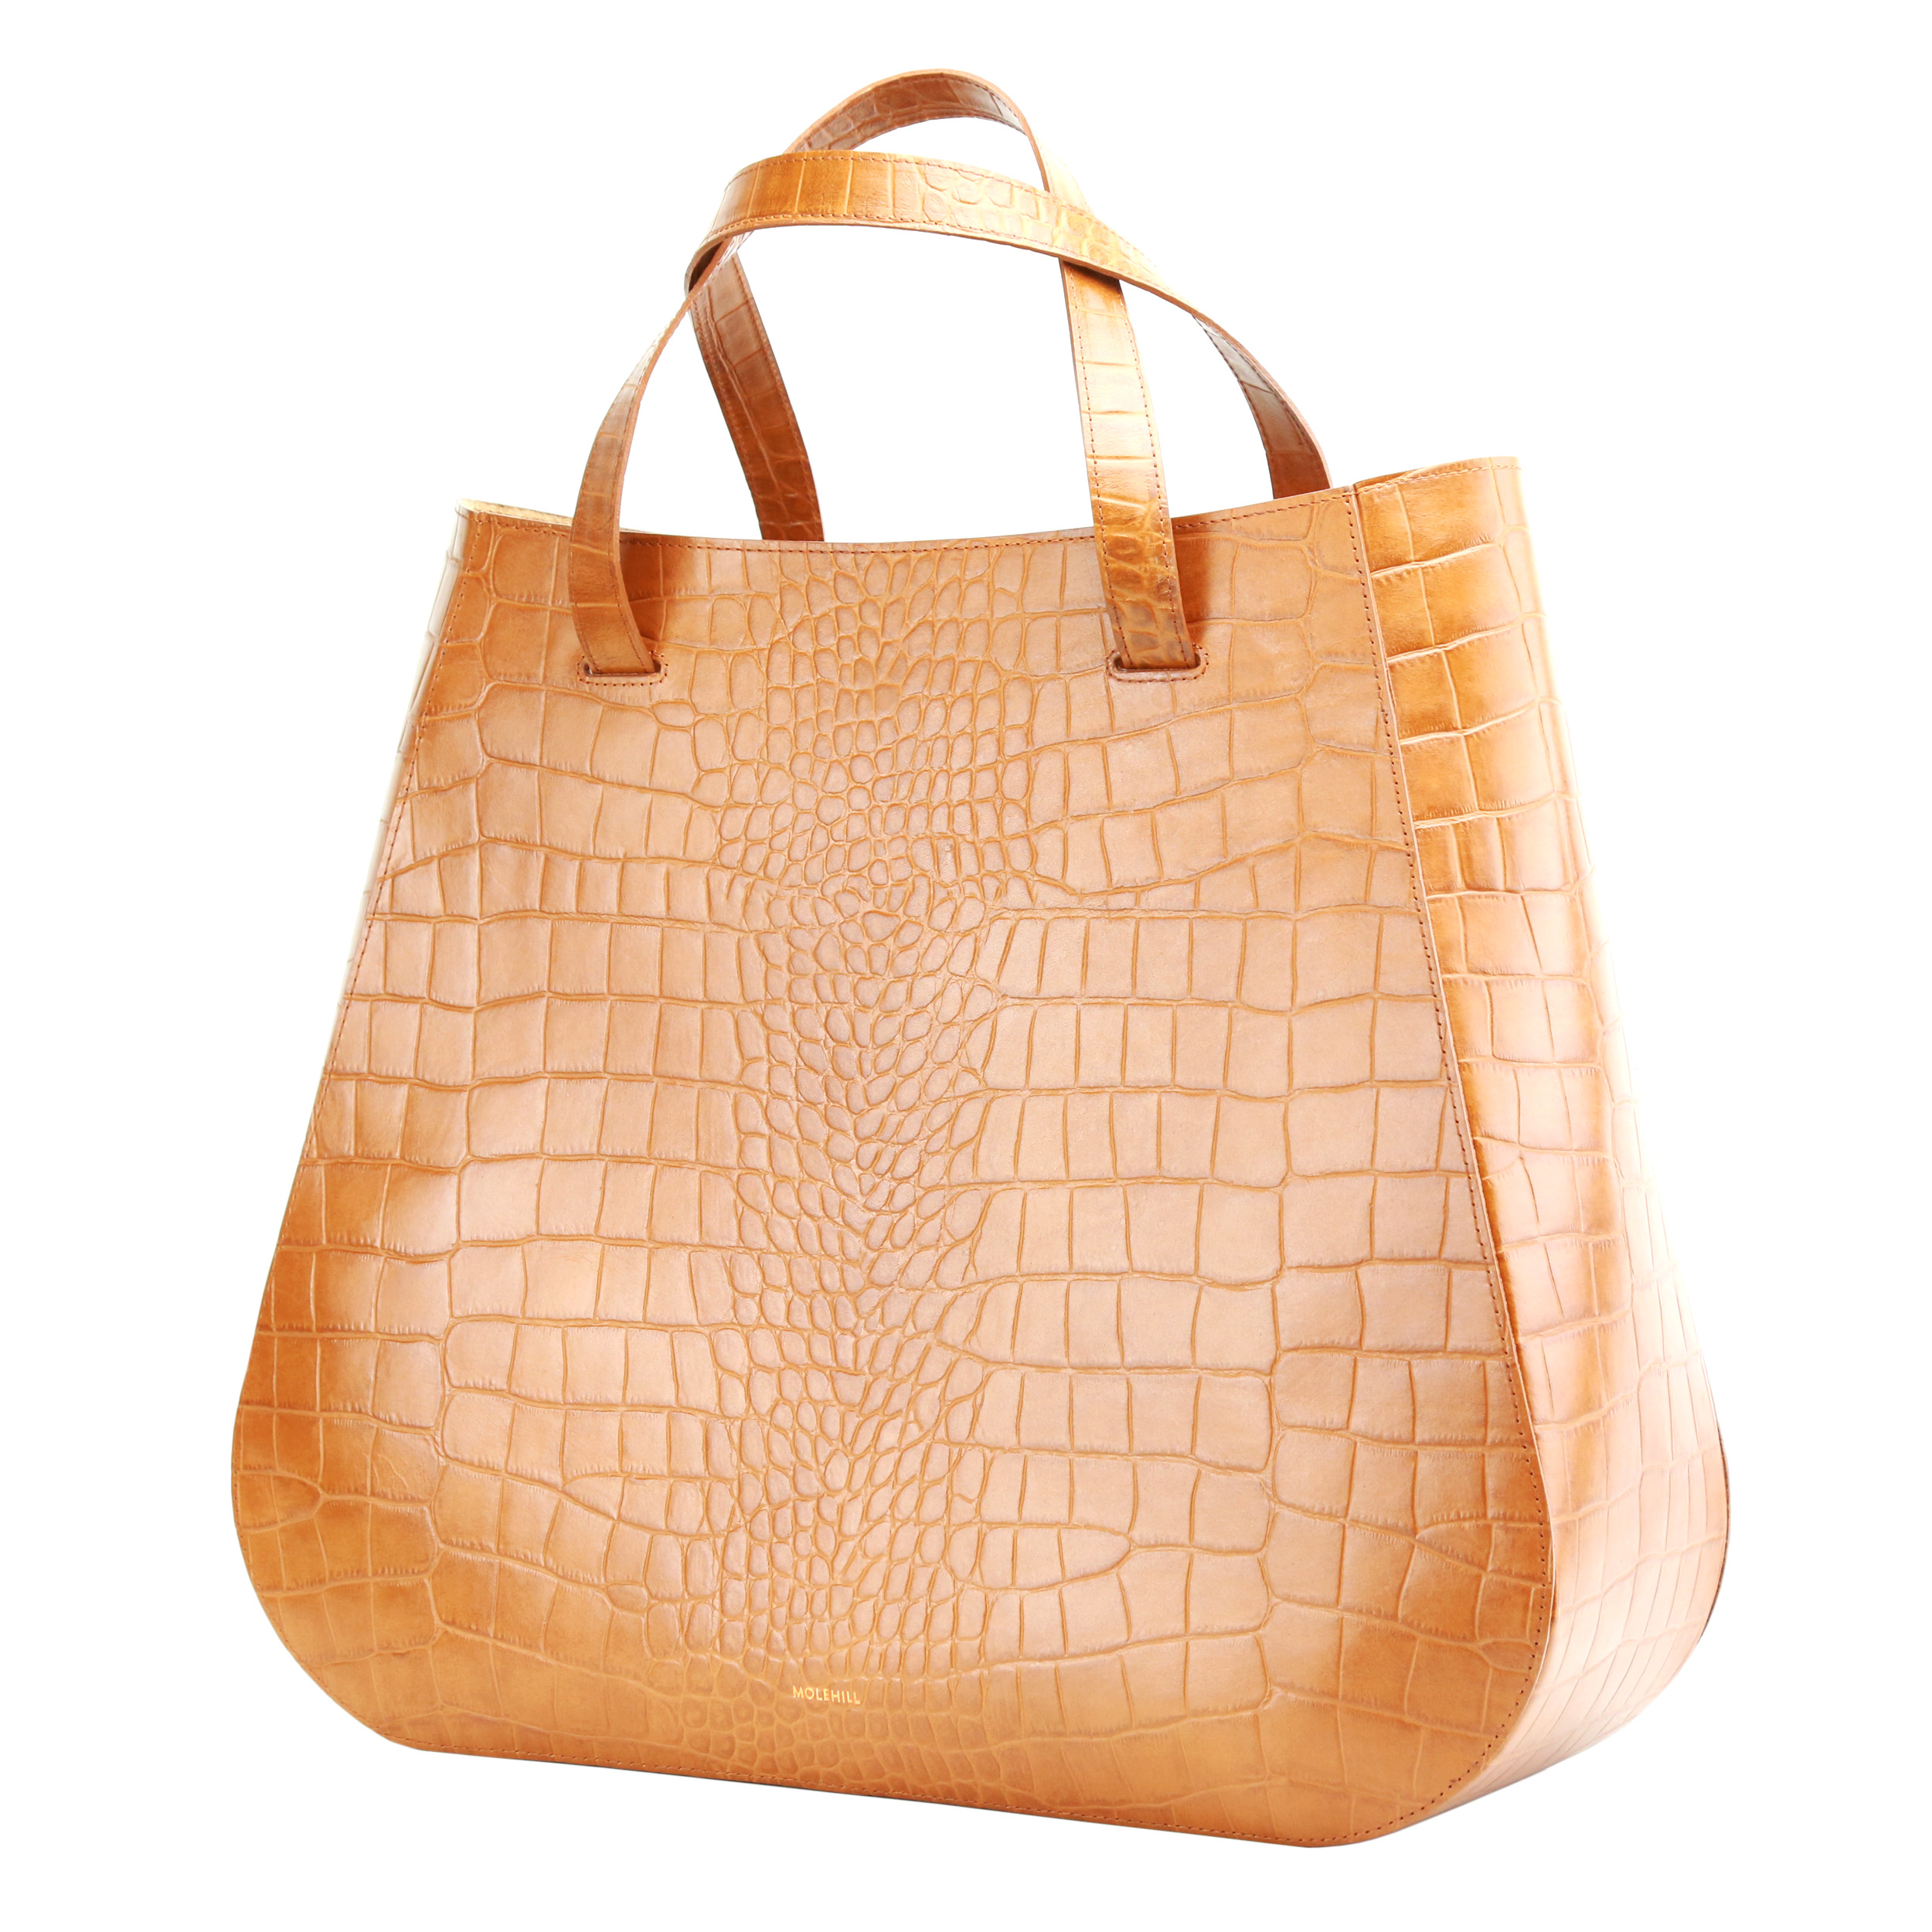 Lesla-Large-Bag-Honey-2